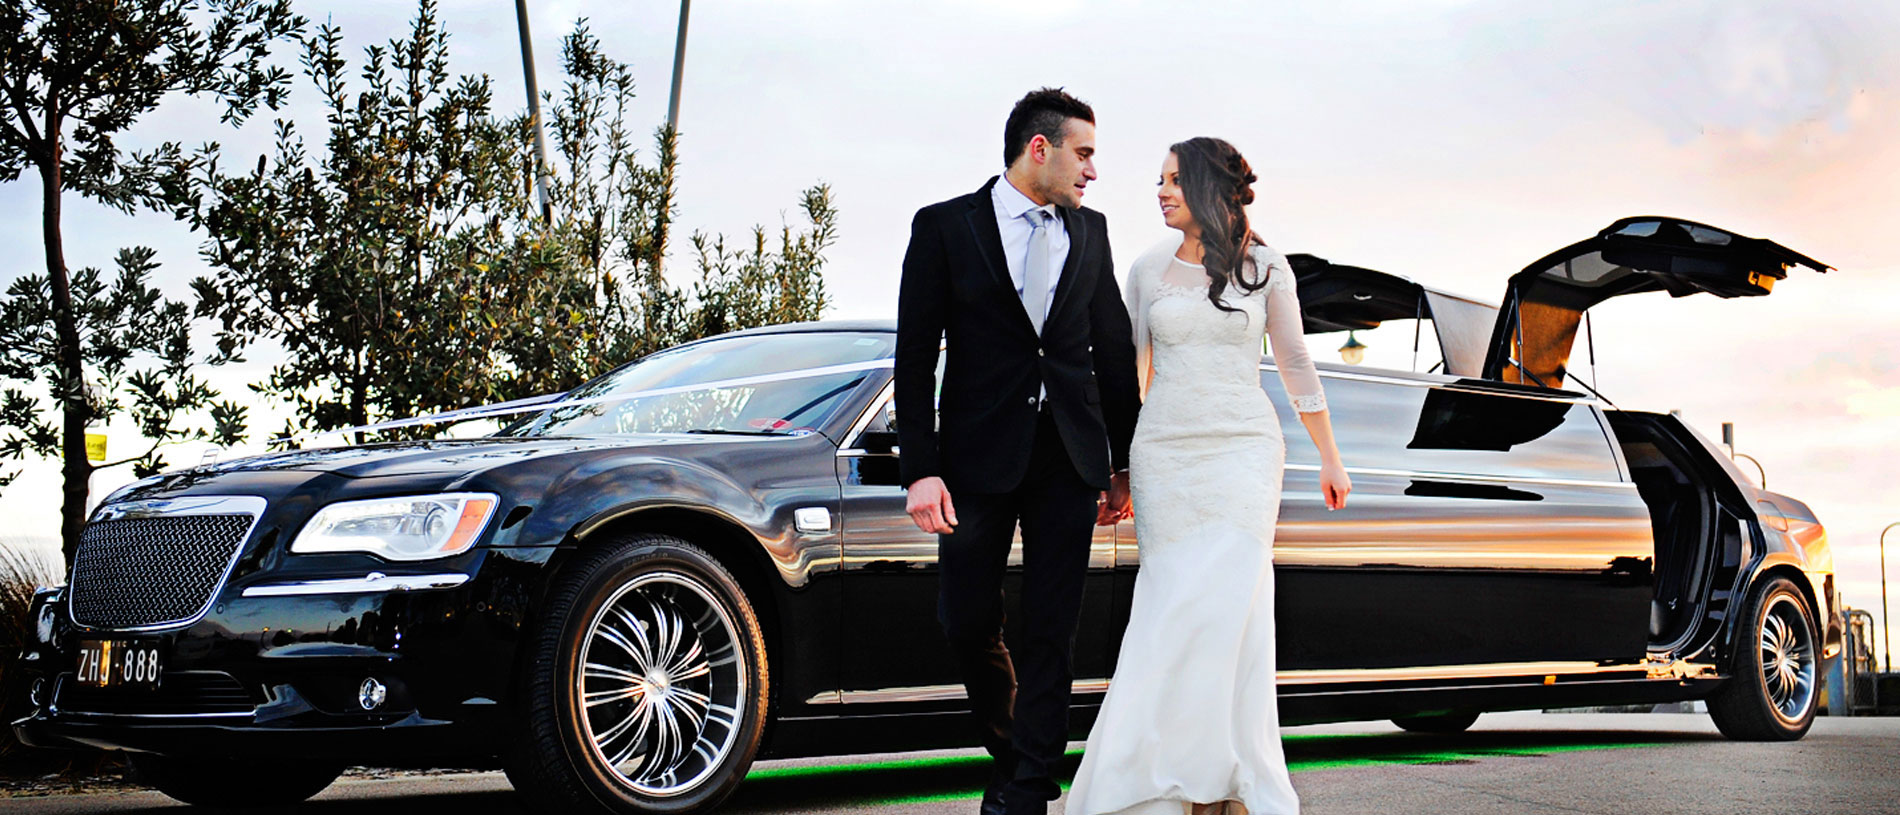 Wedding Car Hire Melbourne - Luxury Limousines Wedding Hire